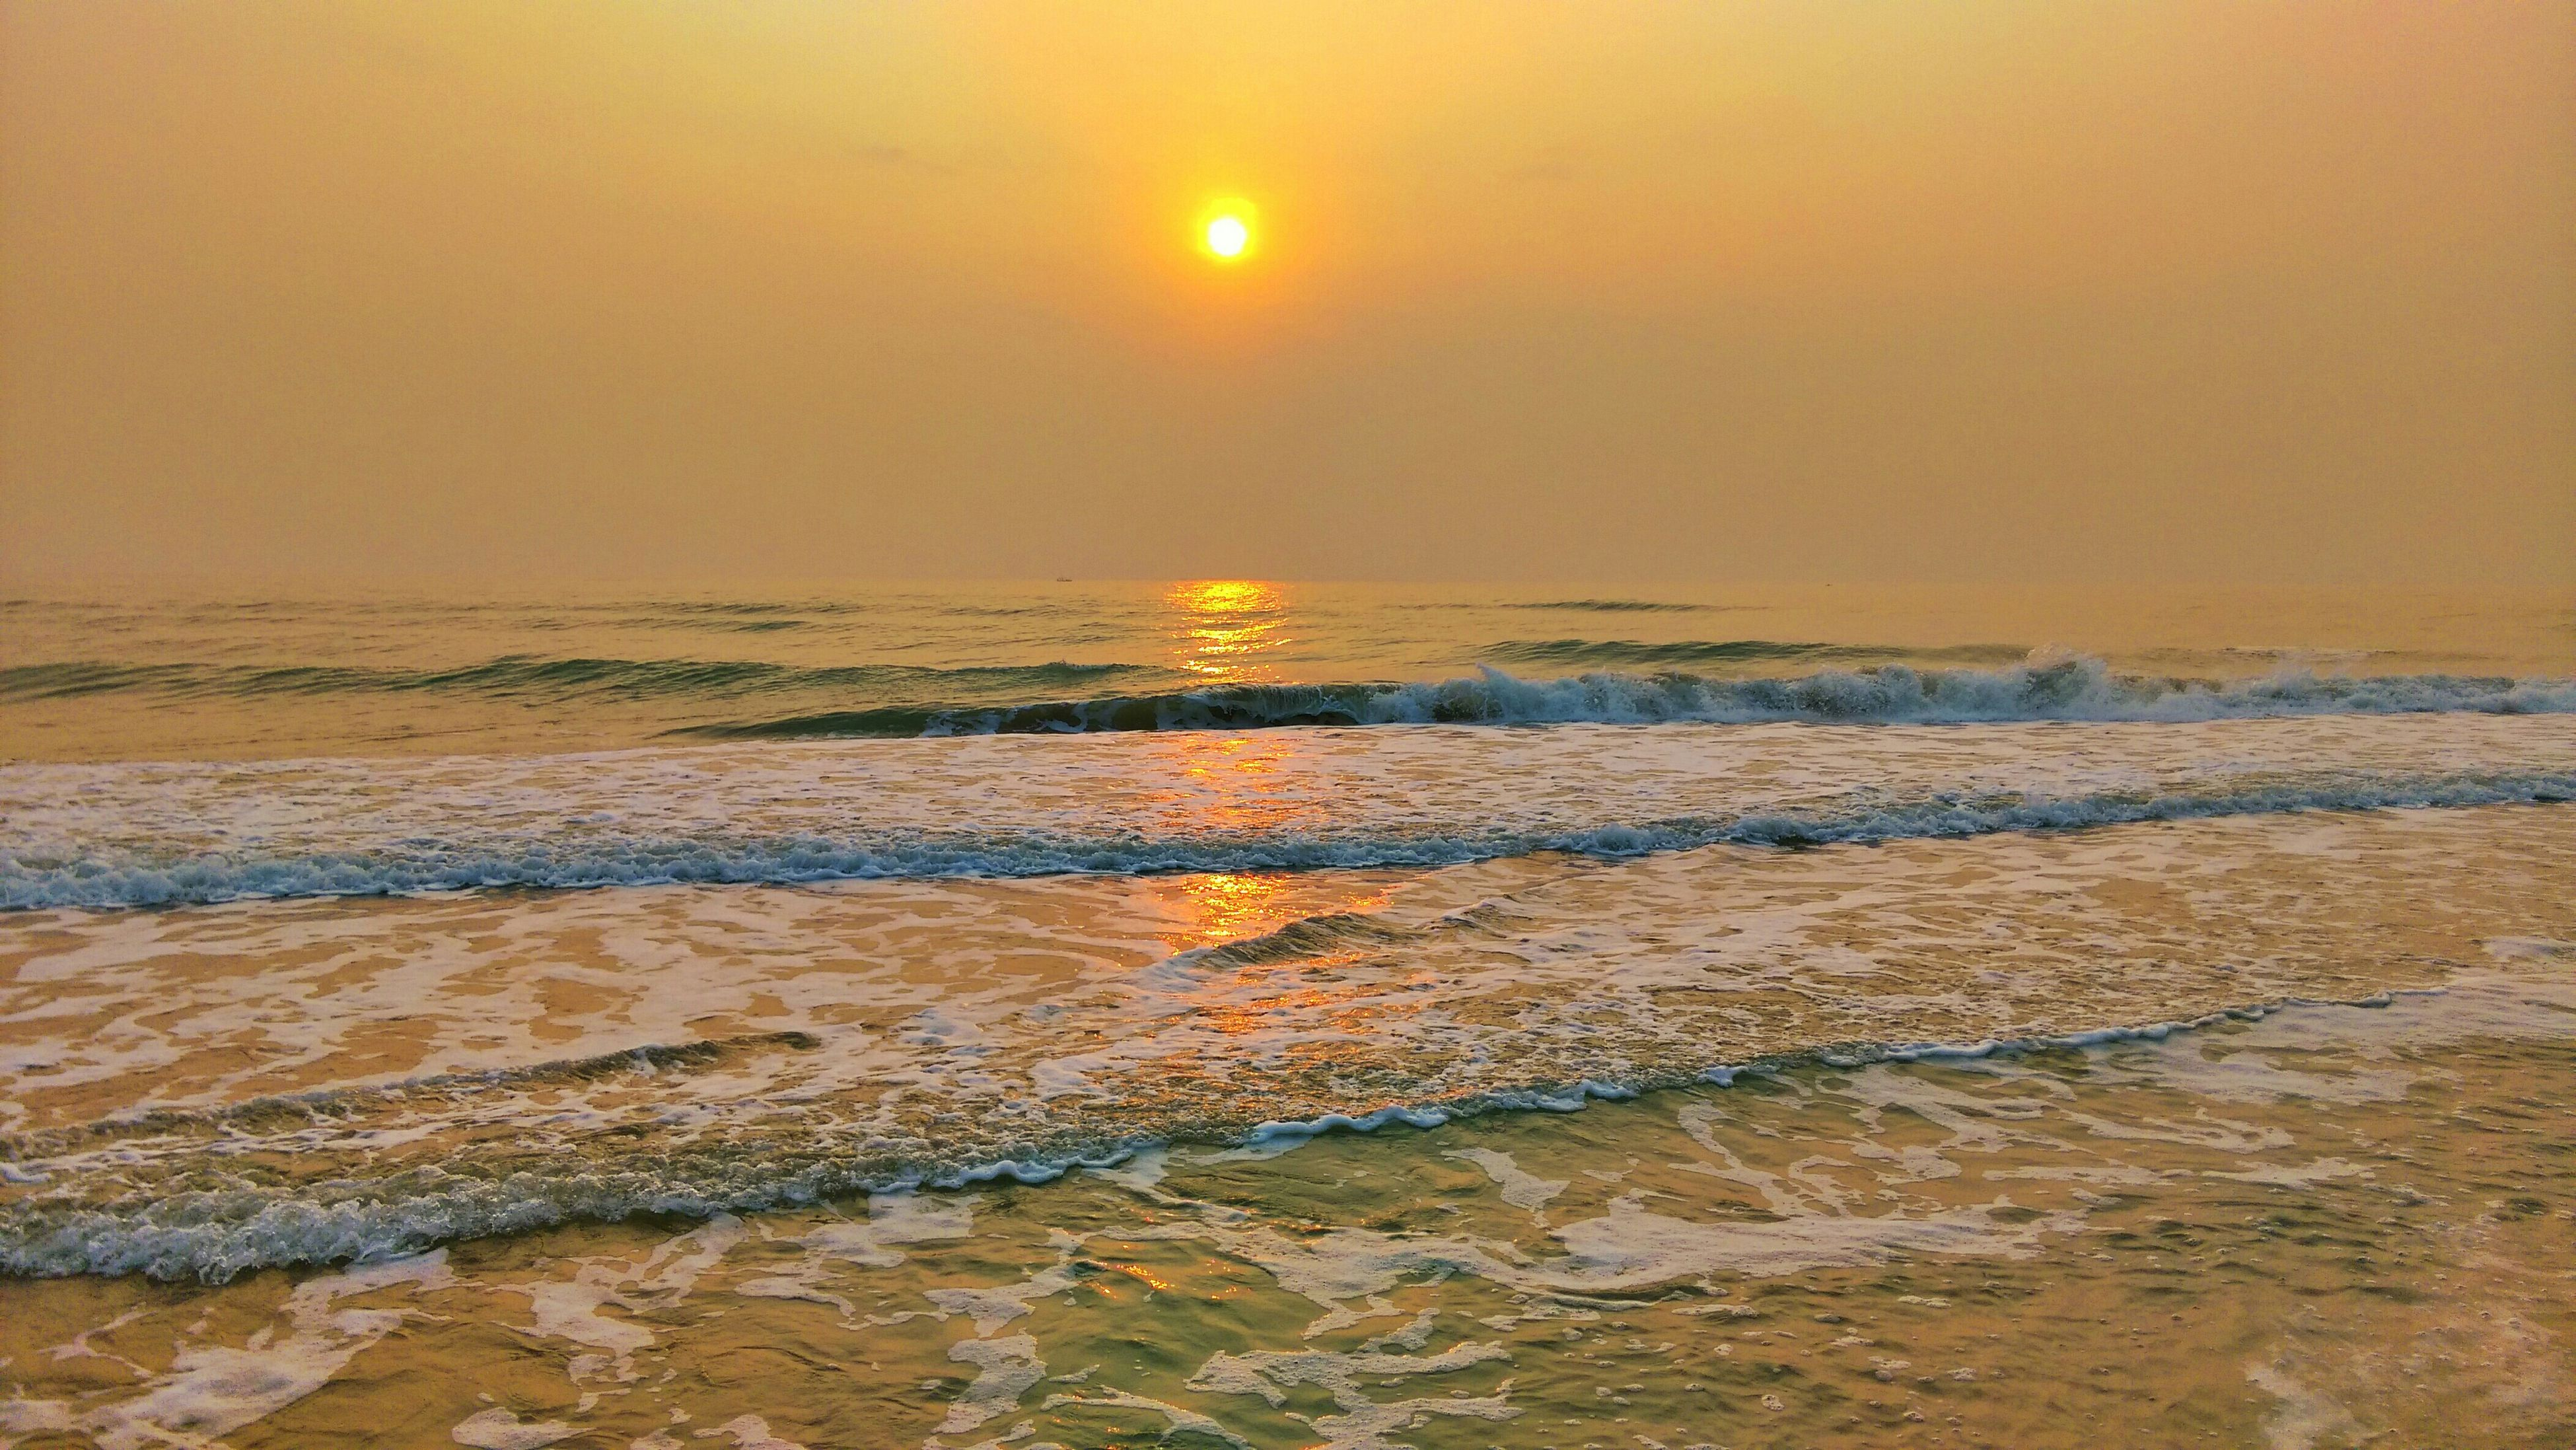 sea, sunset, water, horizon over water, beach, scenics, sun, tranquil scene, shore, beauty in nature, tranquility, orange color, sky, wave, nature, idyllic, reflection, sand, remote, sunlight